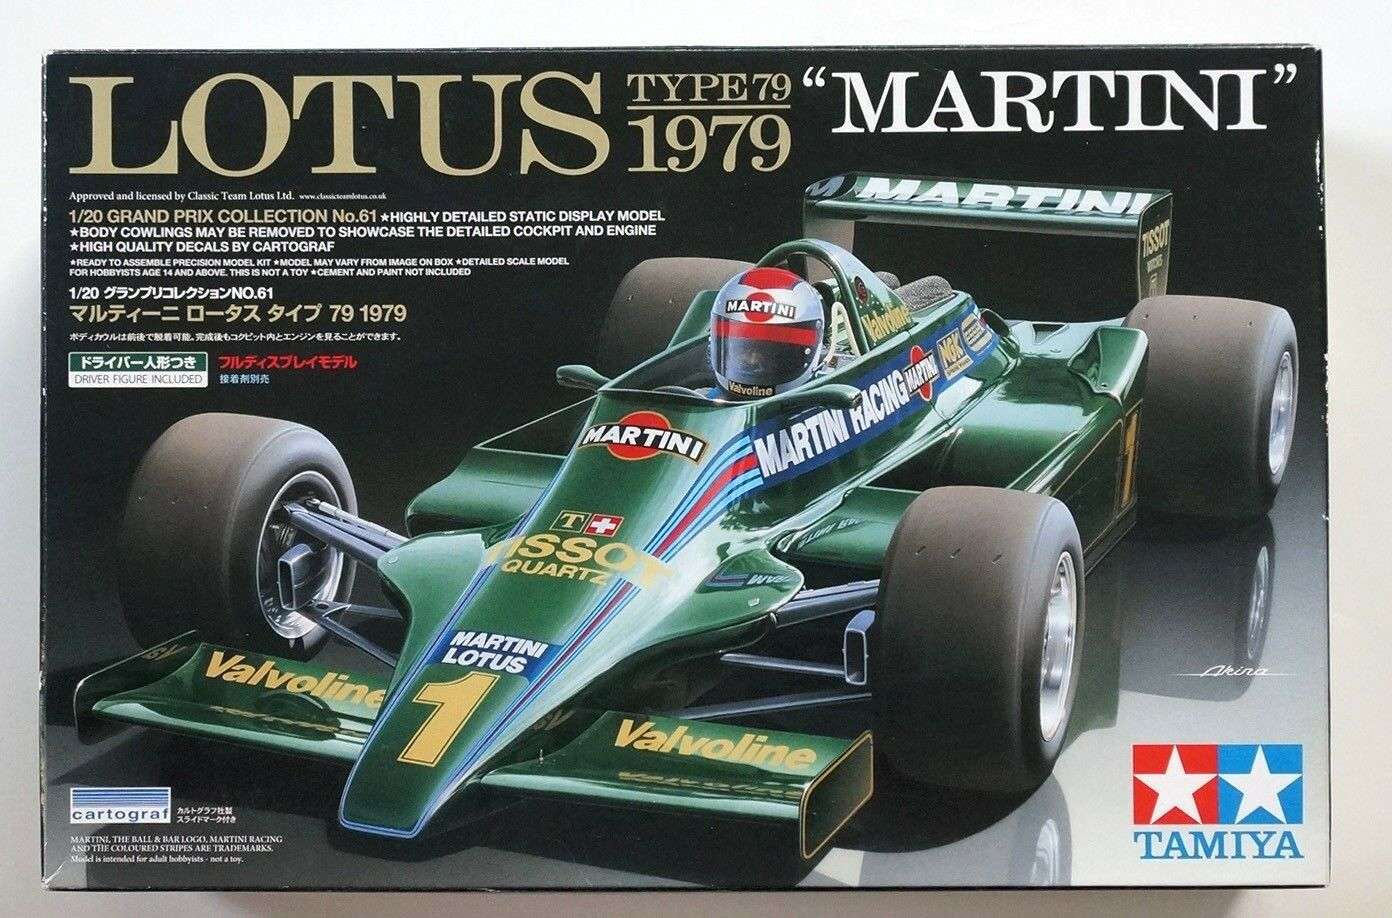 TAMIYA 1 20 Martini Lotus type 79 1979 w  Driver figure scale model kit